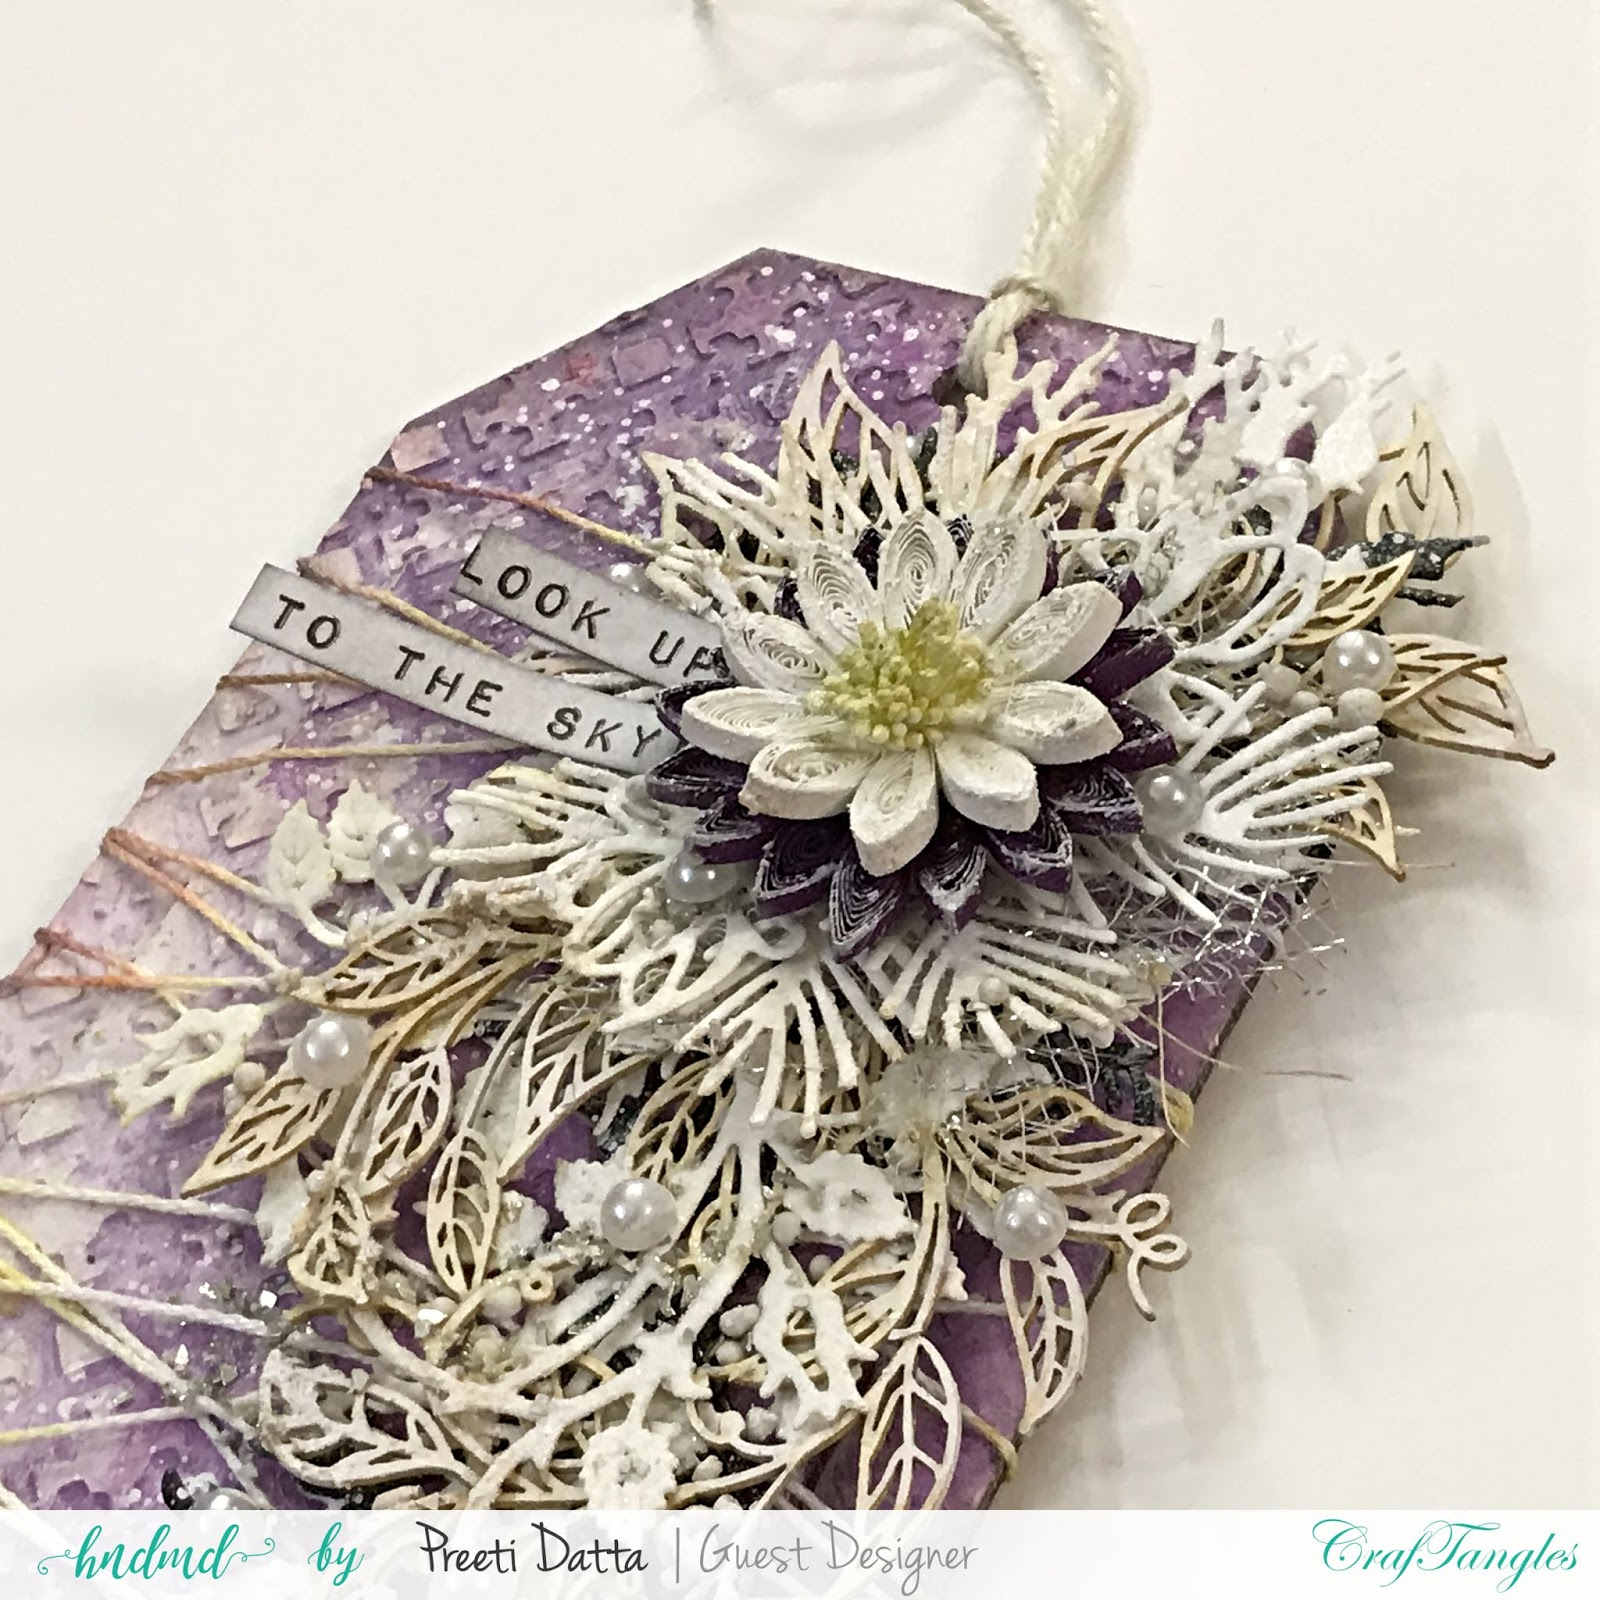 Floral Mixed Media Tag (with Pictorial) by Preeti Datta 11